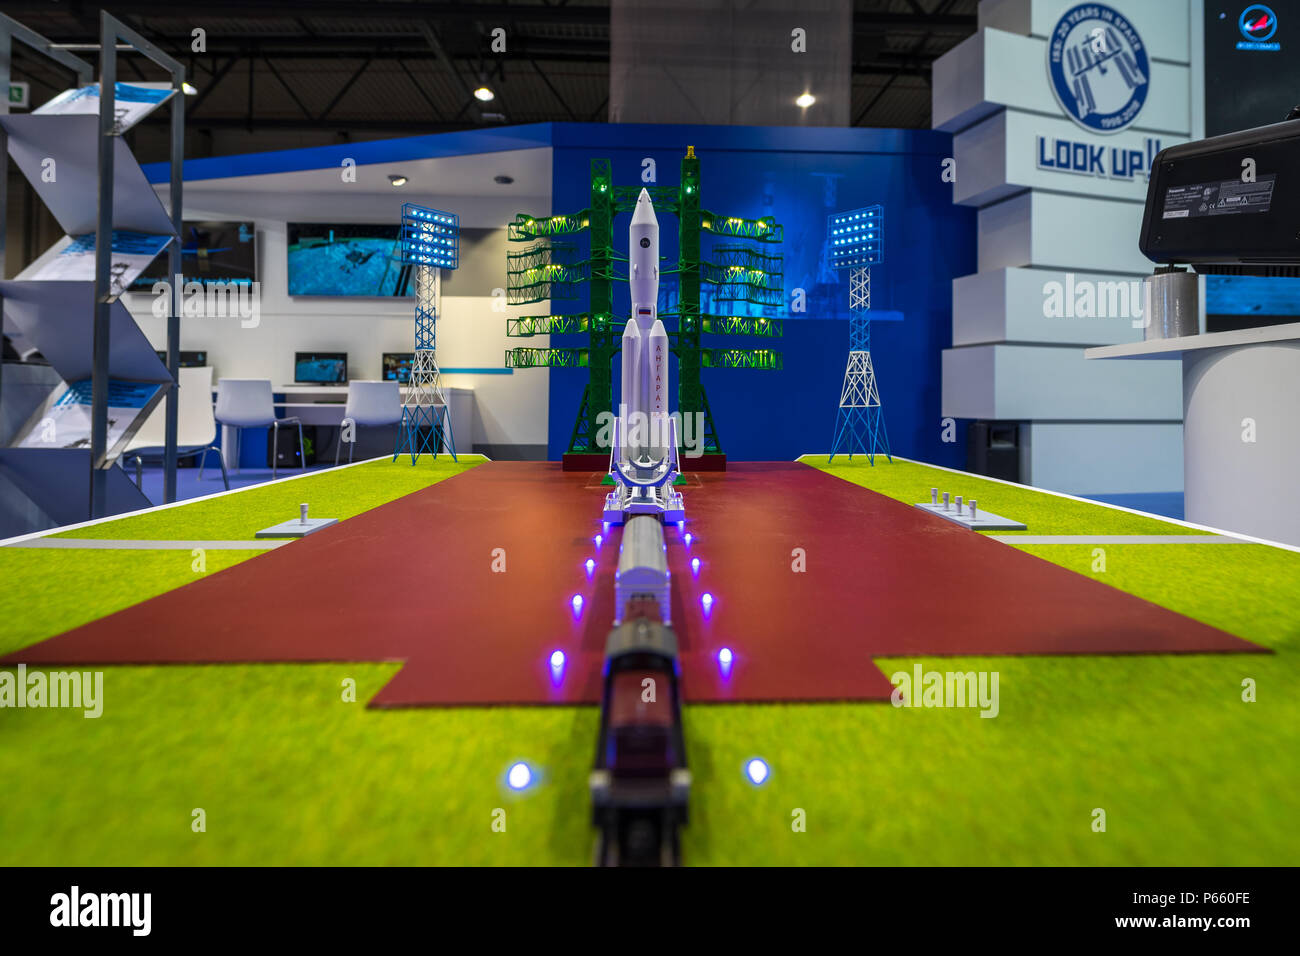 Stand of Roscosmos State Corporation for Space Activities. The plan for a new spaceport Vostochny and an Angara-5 missile carrier model. - Stock Image